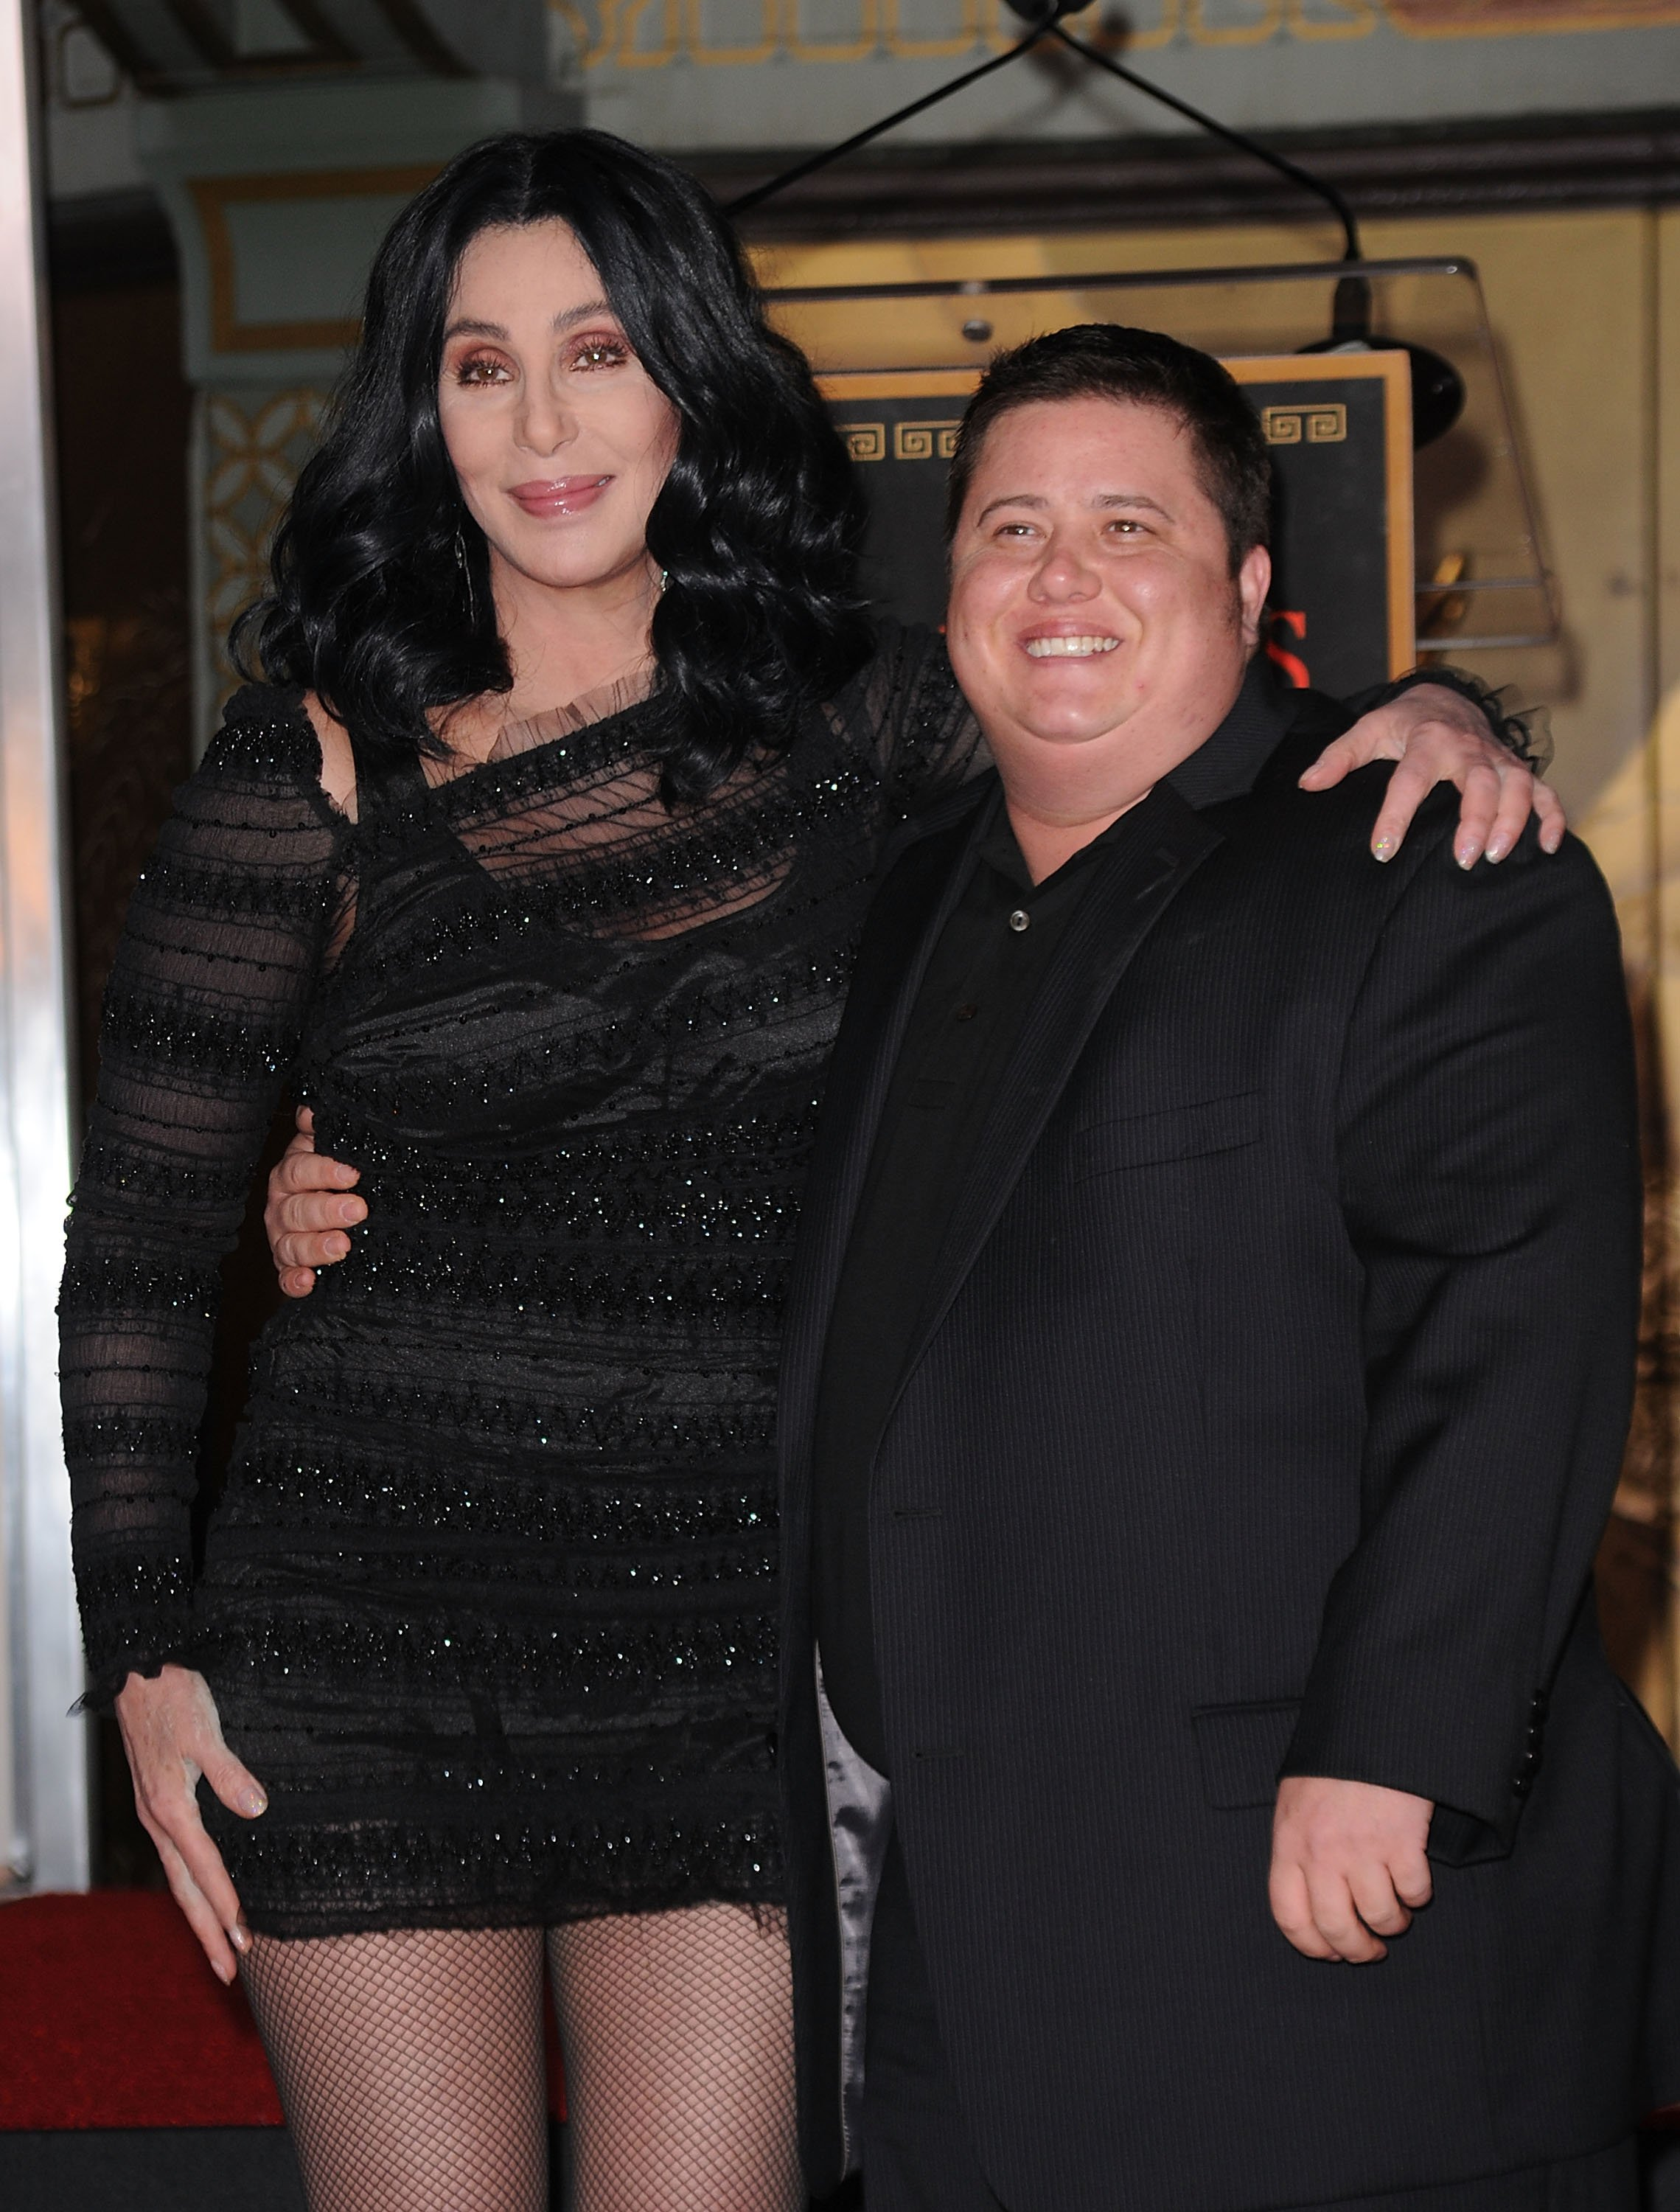 Cher and Chaz Bono pose as Cher is immortalized with hand and footprint ceremony on November 18, 2010 | Photo: Getty Images